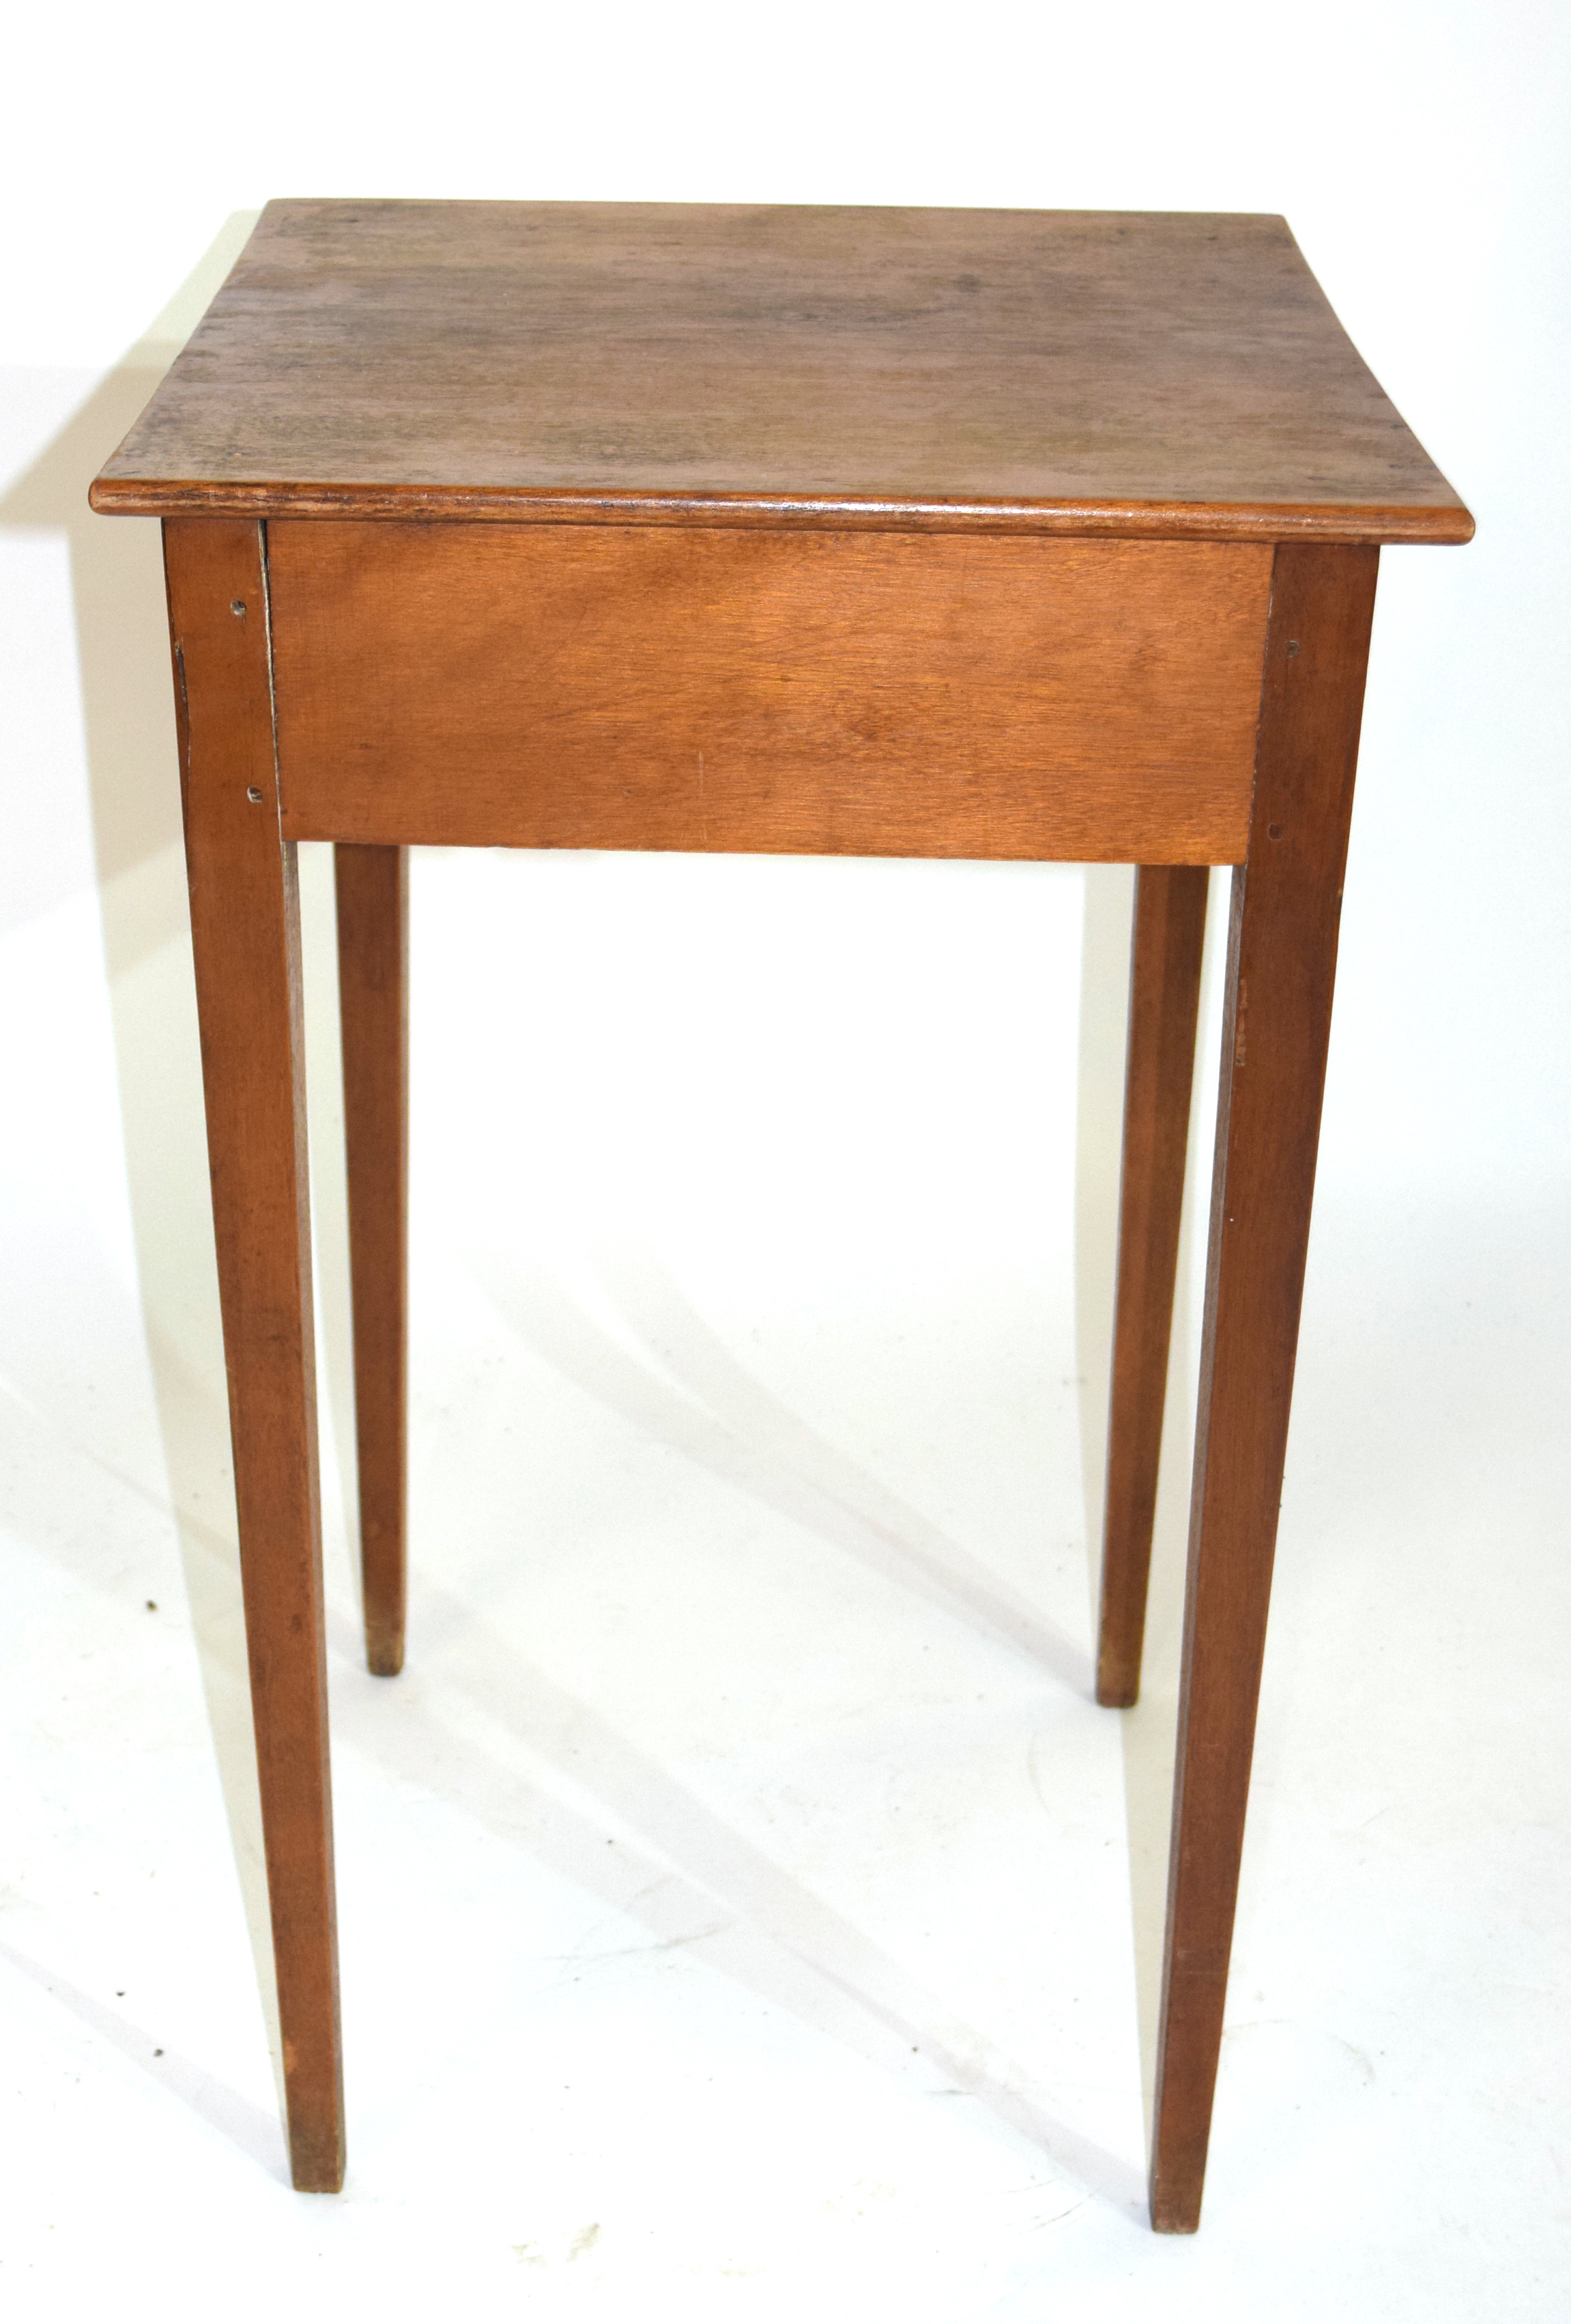 Small square stained table with drawer 70cm in height Condition: Structurally sound but requires - Image 4 of 4